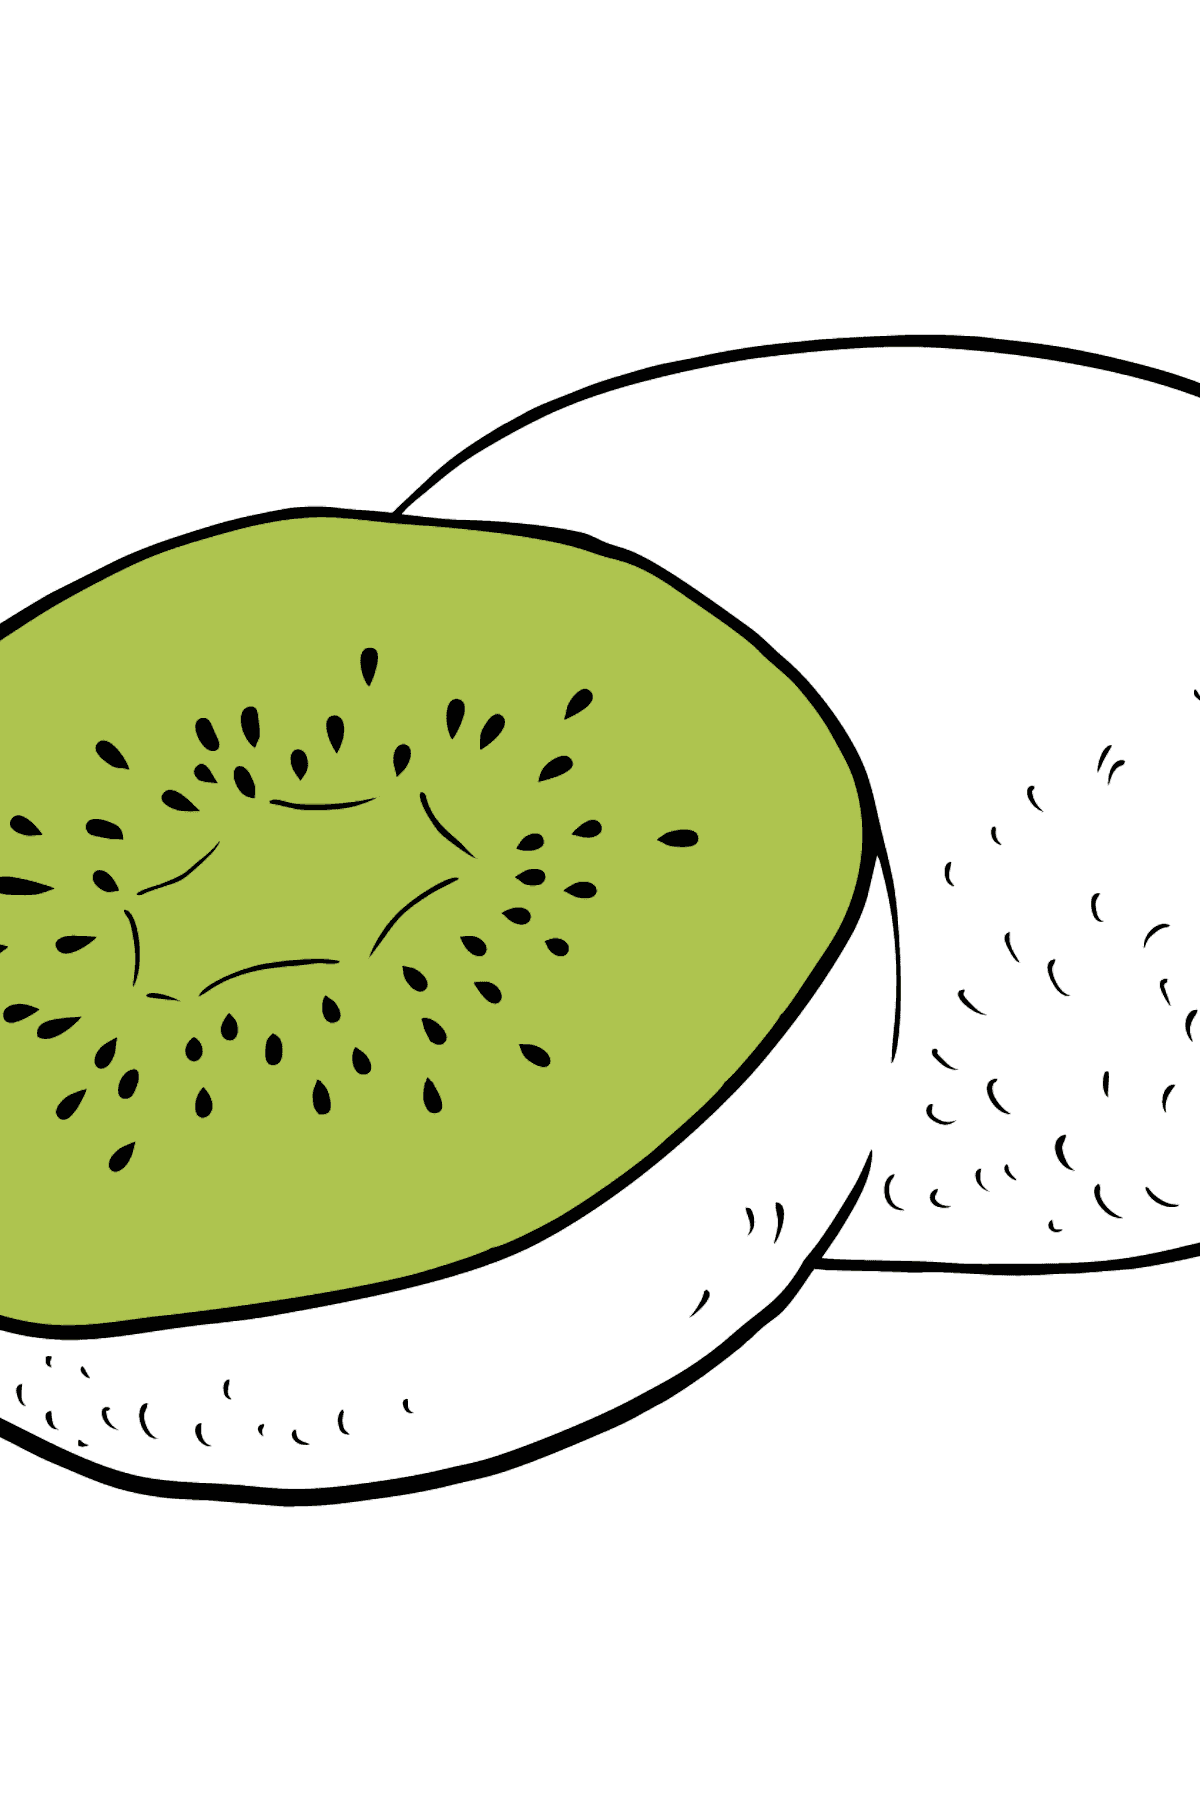 Kiwi coloring page - Coloring Pages for Kids